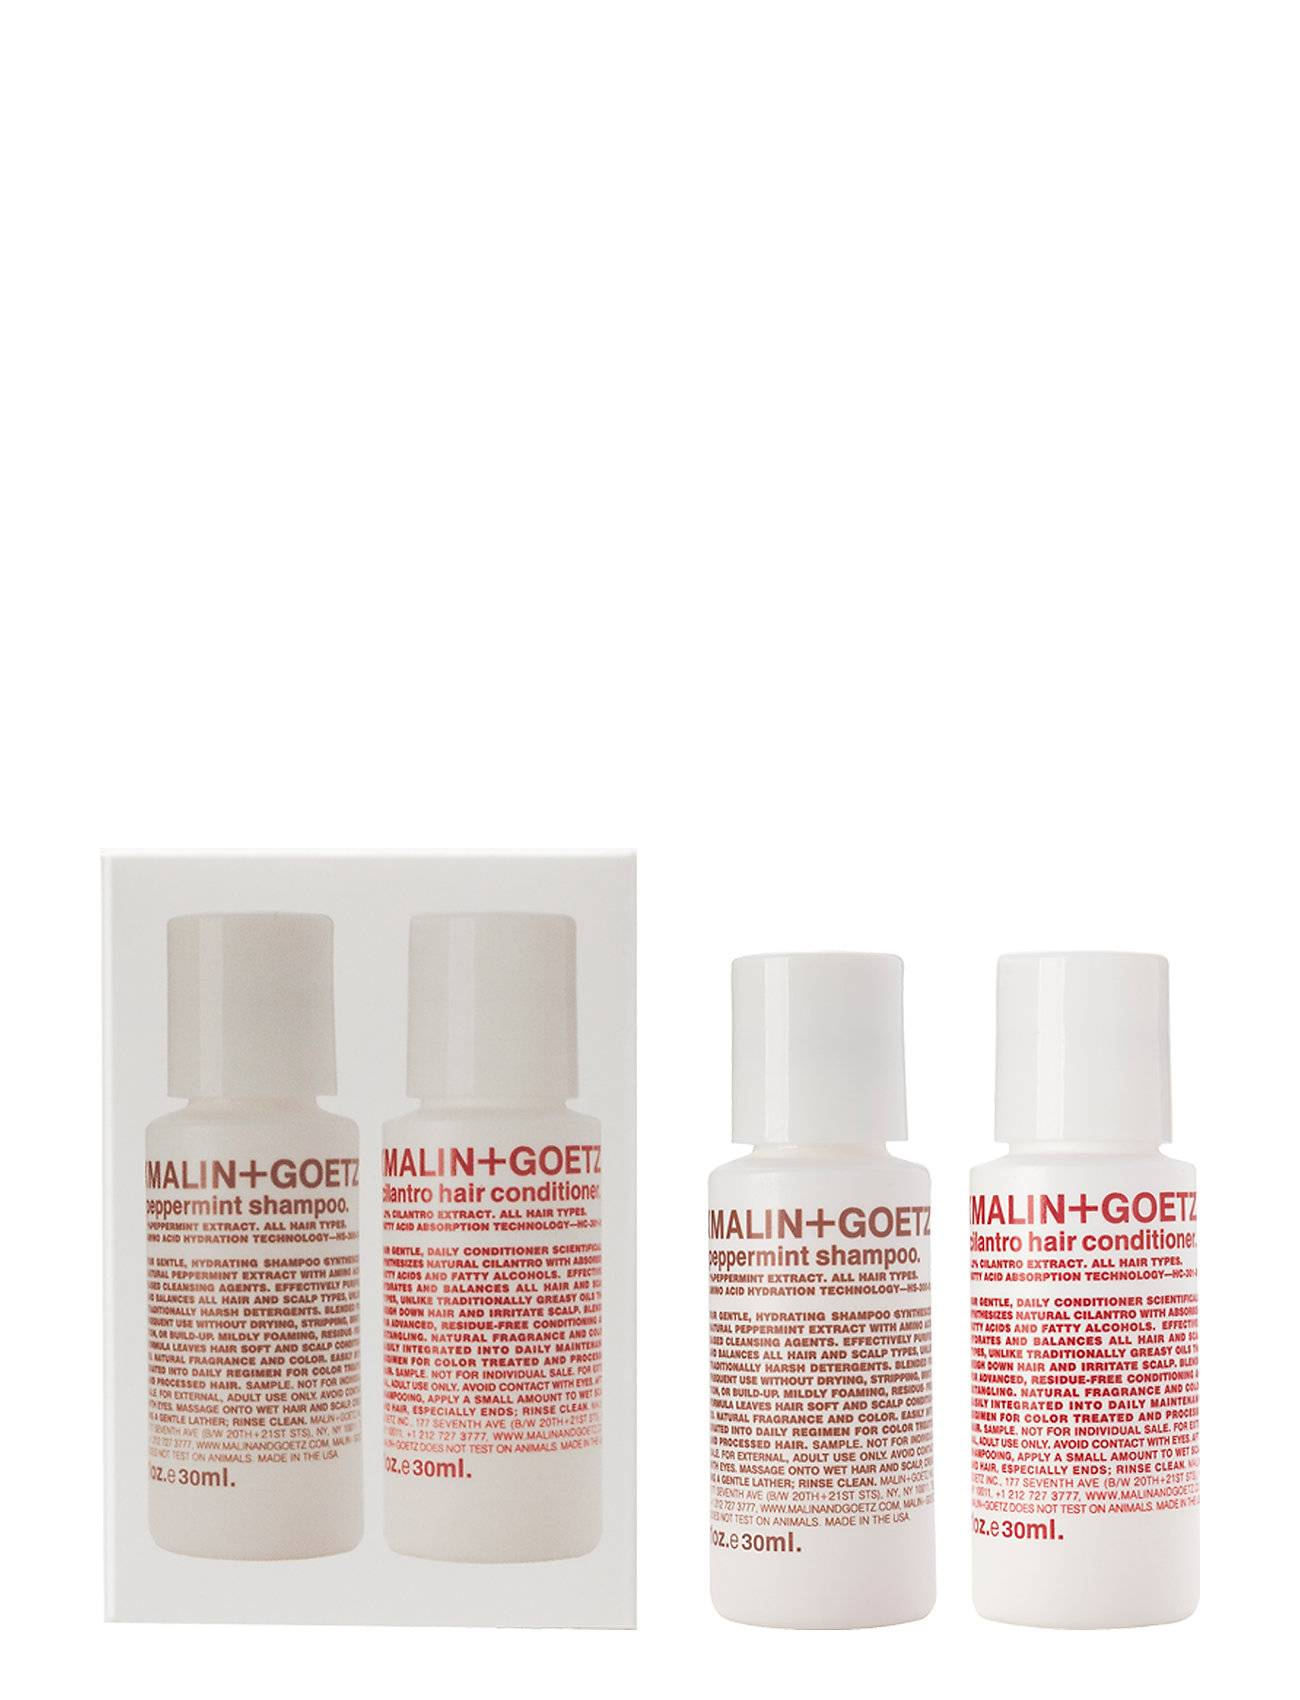 Malin+Goetz Hair Essentials Duo Beauty MEN ALL SETS Nude Malin+Goetz